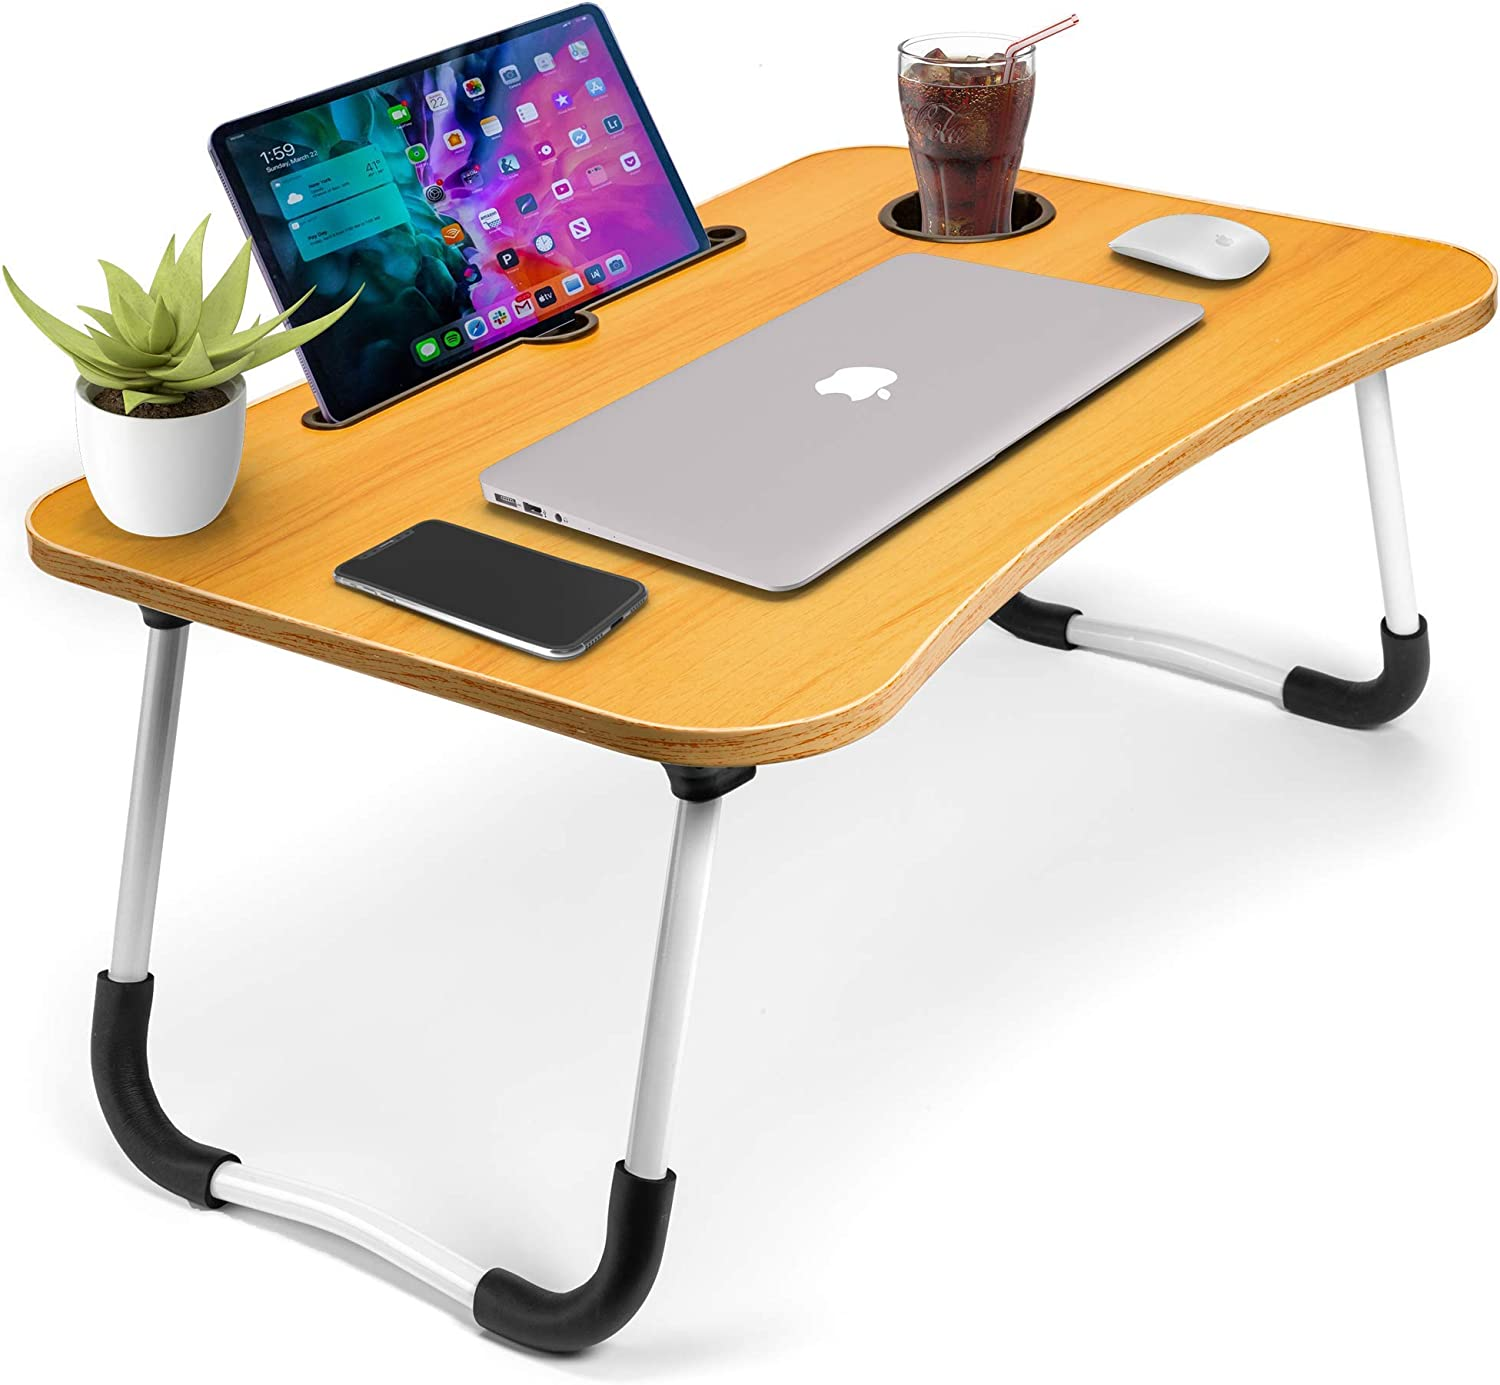 Laptop Desk for Bed by Gods of Essentials | Laptop Table for Bed | Laptop Bed Tray Table | Foldable Lap Desk Stand | Adjustable Laptop Table for Bed |